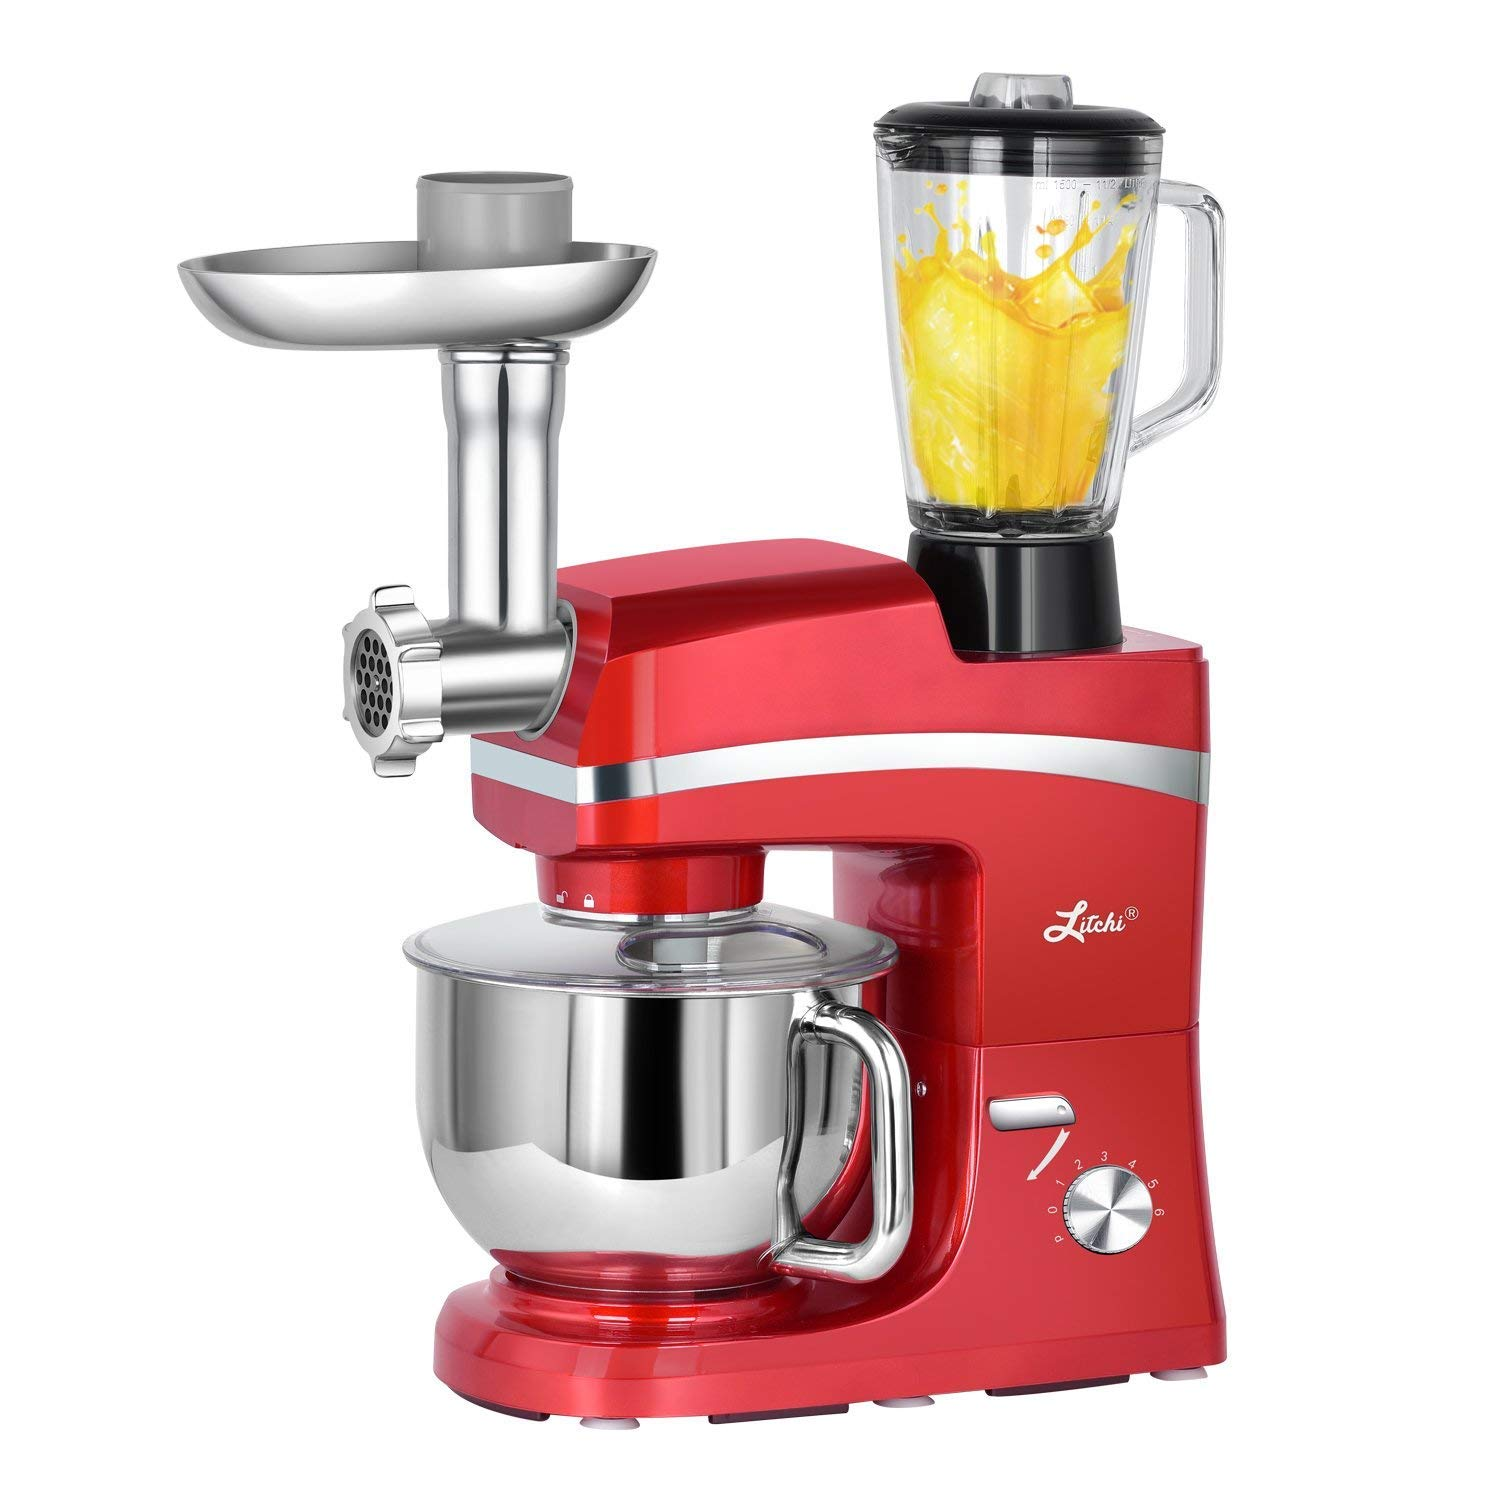 Litchi 5.3 Quart Stand Mixer, 6 Speed Tilt-Head Stand Mixer with Meat Grinder, Blender, Sausage Stuffer, Pasta Dies, Dough Hook, Mixing Blade, Flat Beater, Whisk and Pouring Shield, Red